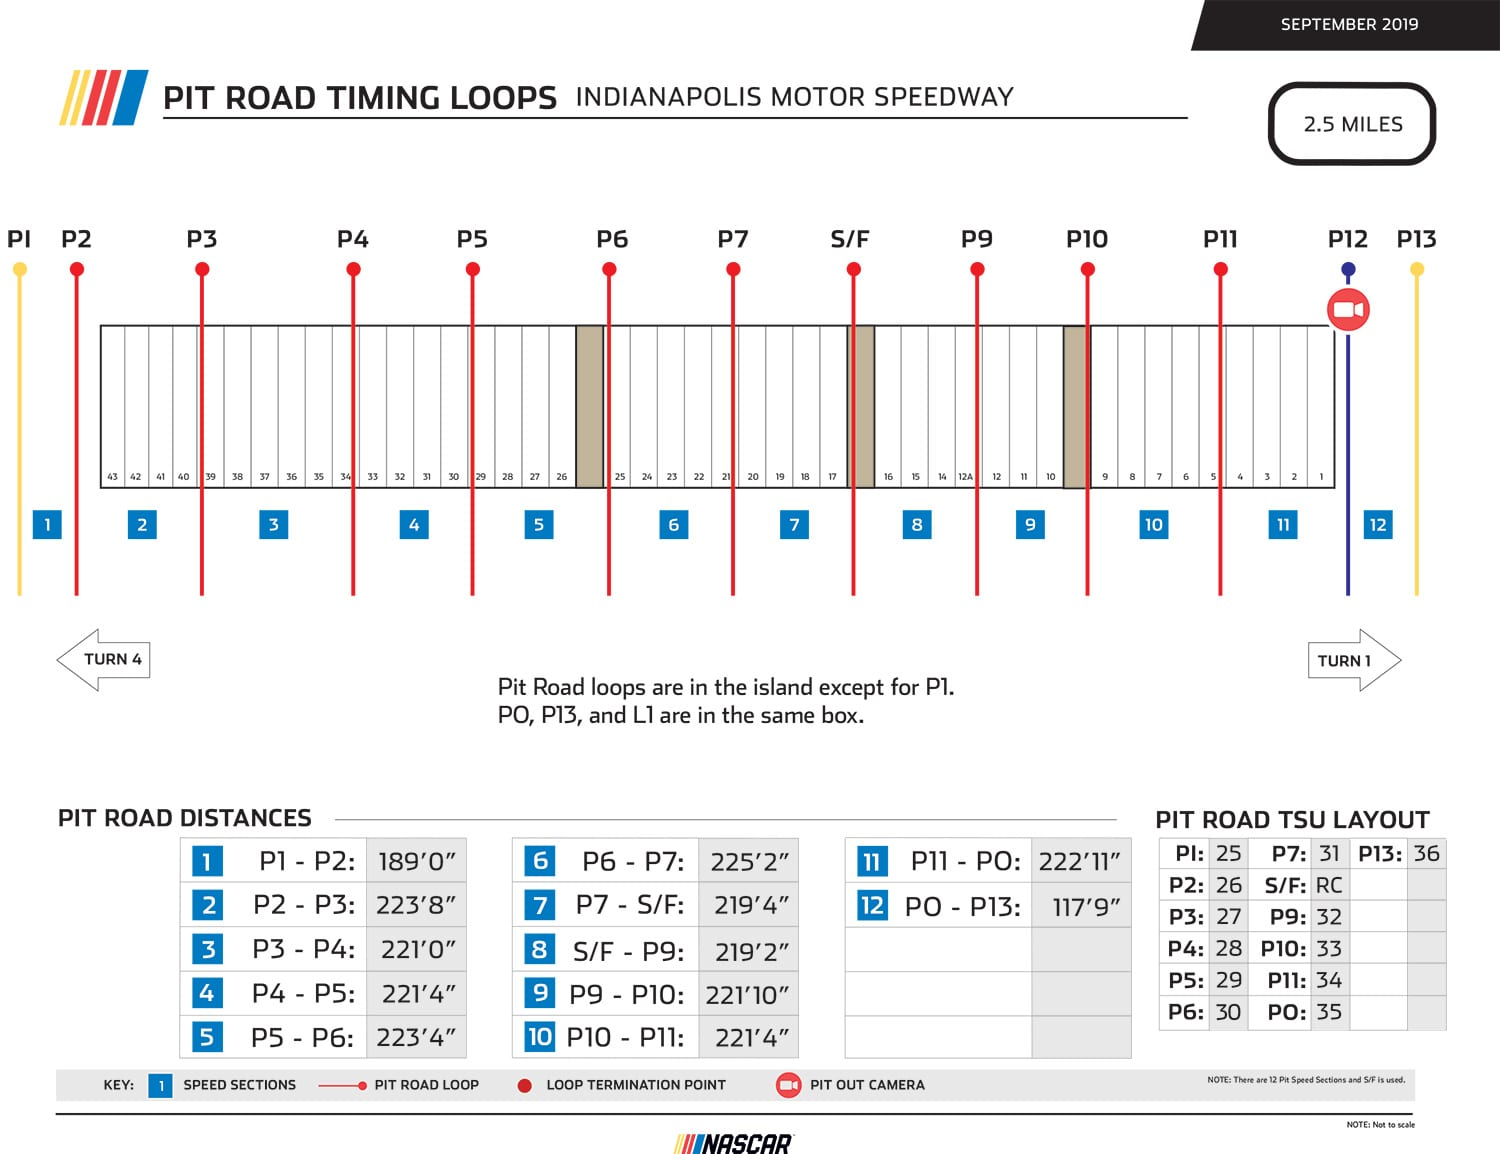 Indy Pit Road Timing